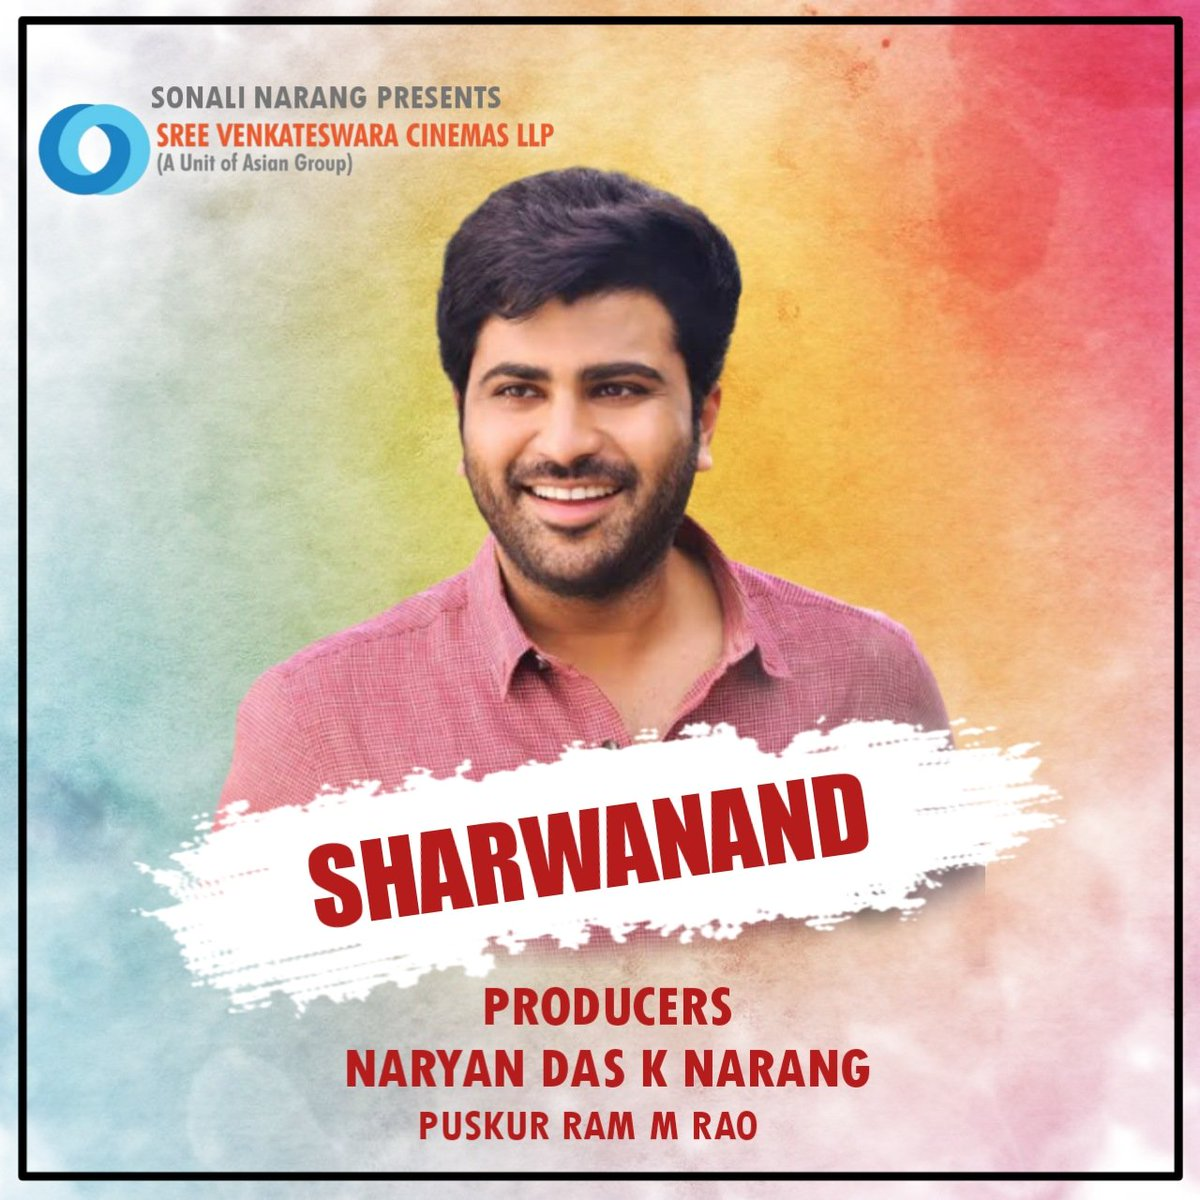 Sri Venkateswara Cinemas LLP is coming up with a huge line of Projects. After the recent big announcements, now they have announced a new collaboration with @ImSharwanand under @SVCLLP.  Produced by NarayanDas K Narang & puskur Ram M Rao  @AsianCinemas_ @AsianSuniel